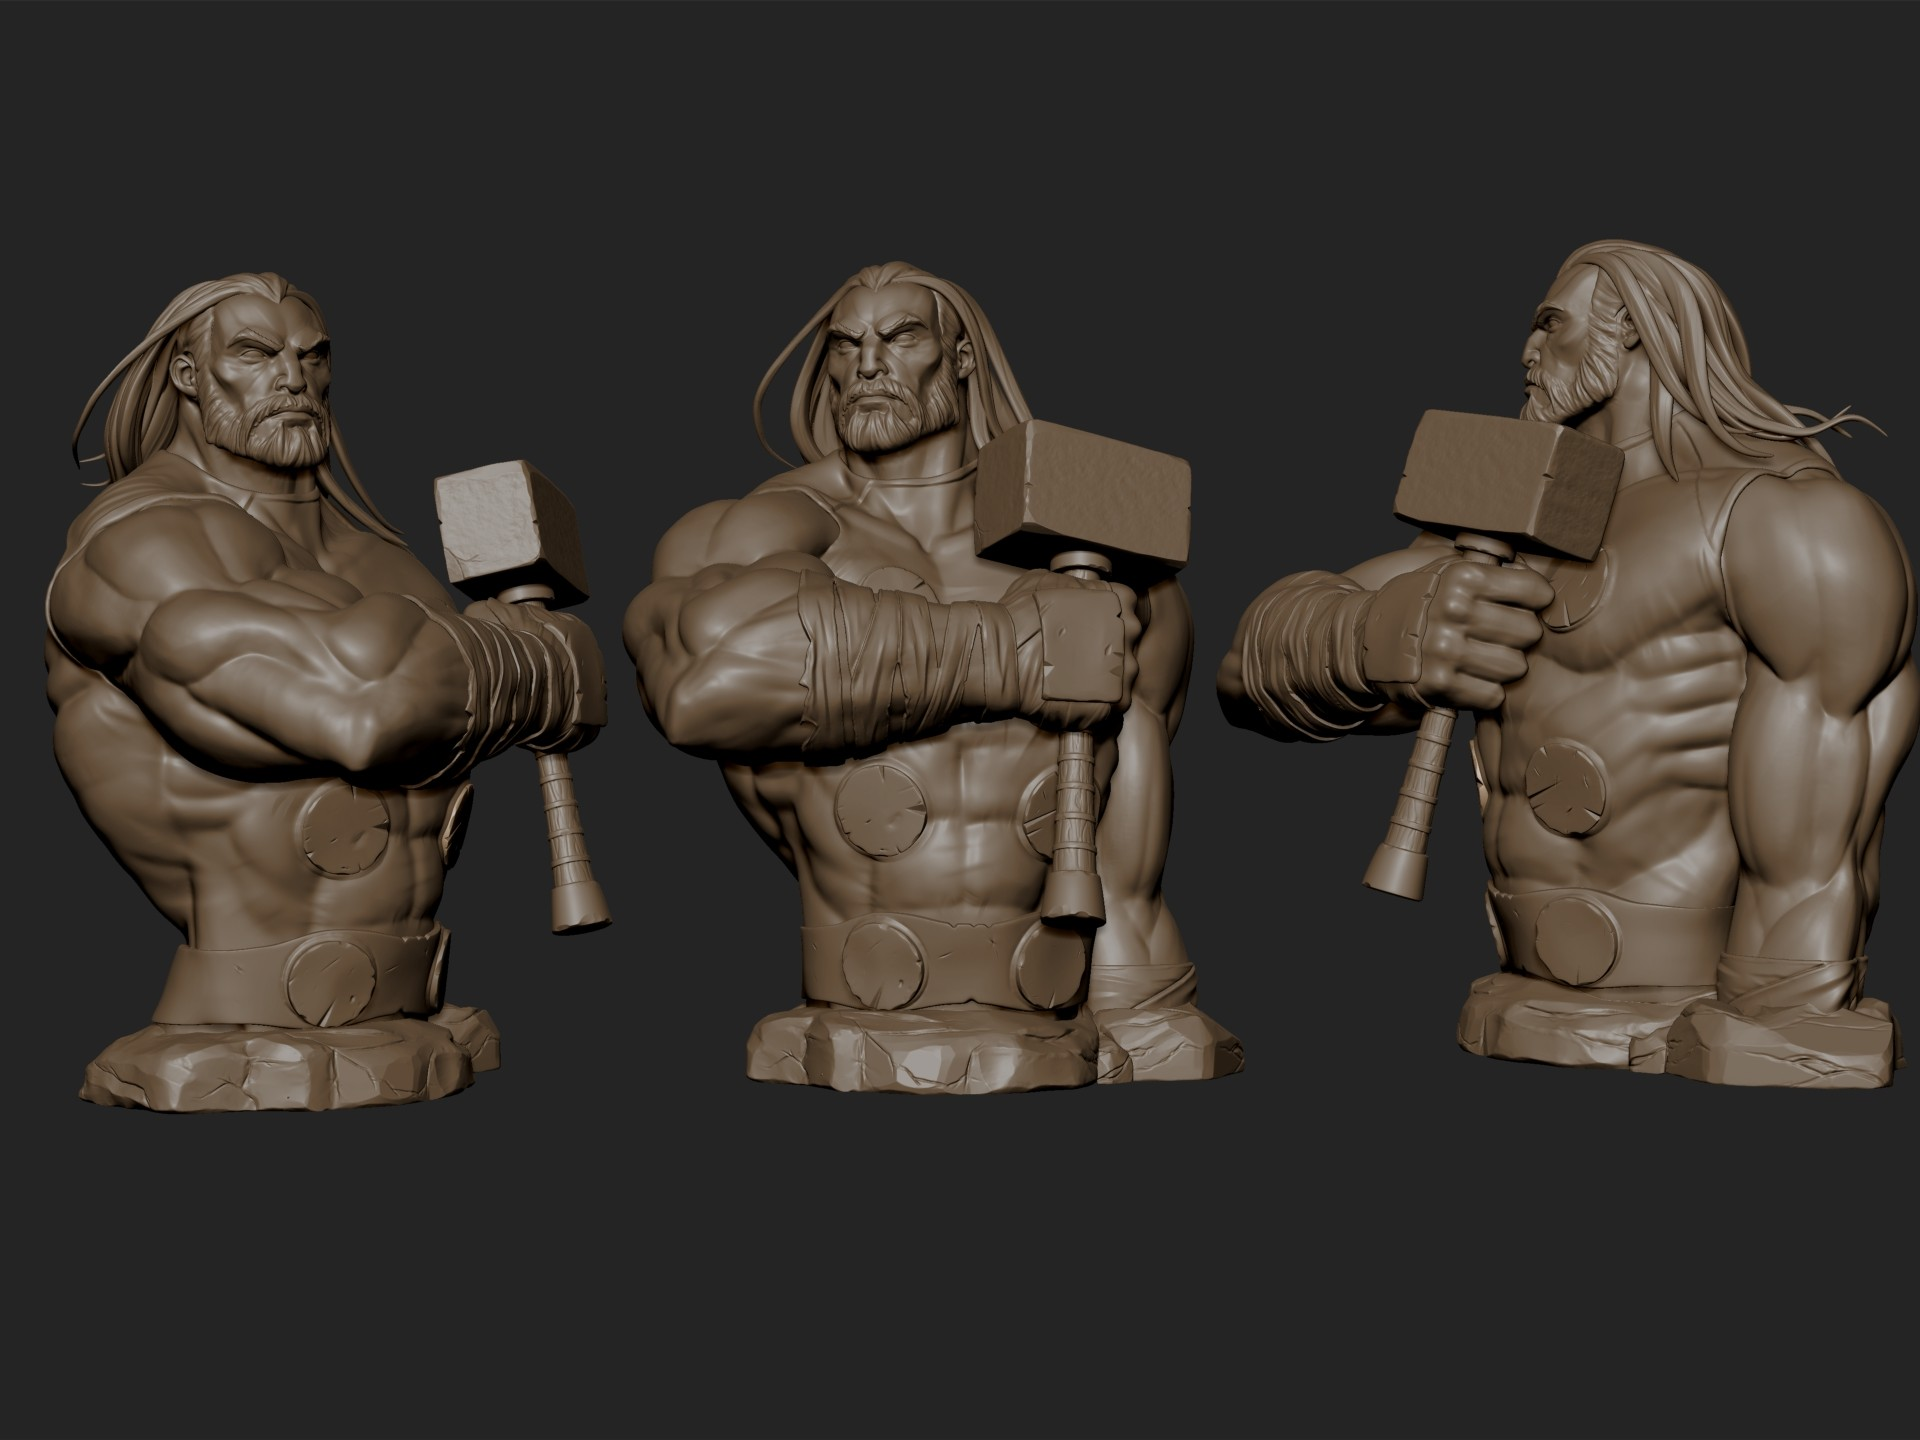 Billy lord sculpts render